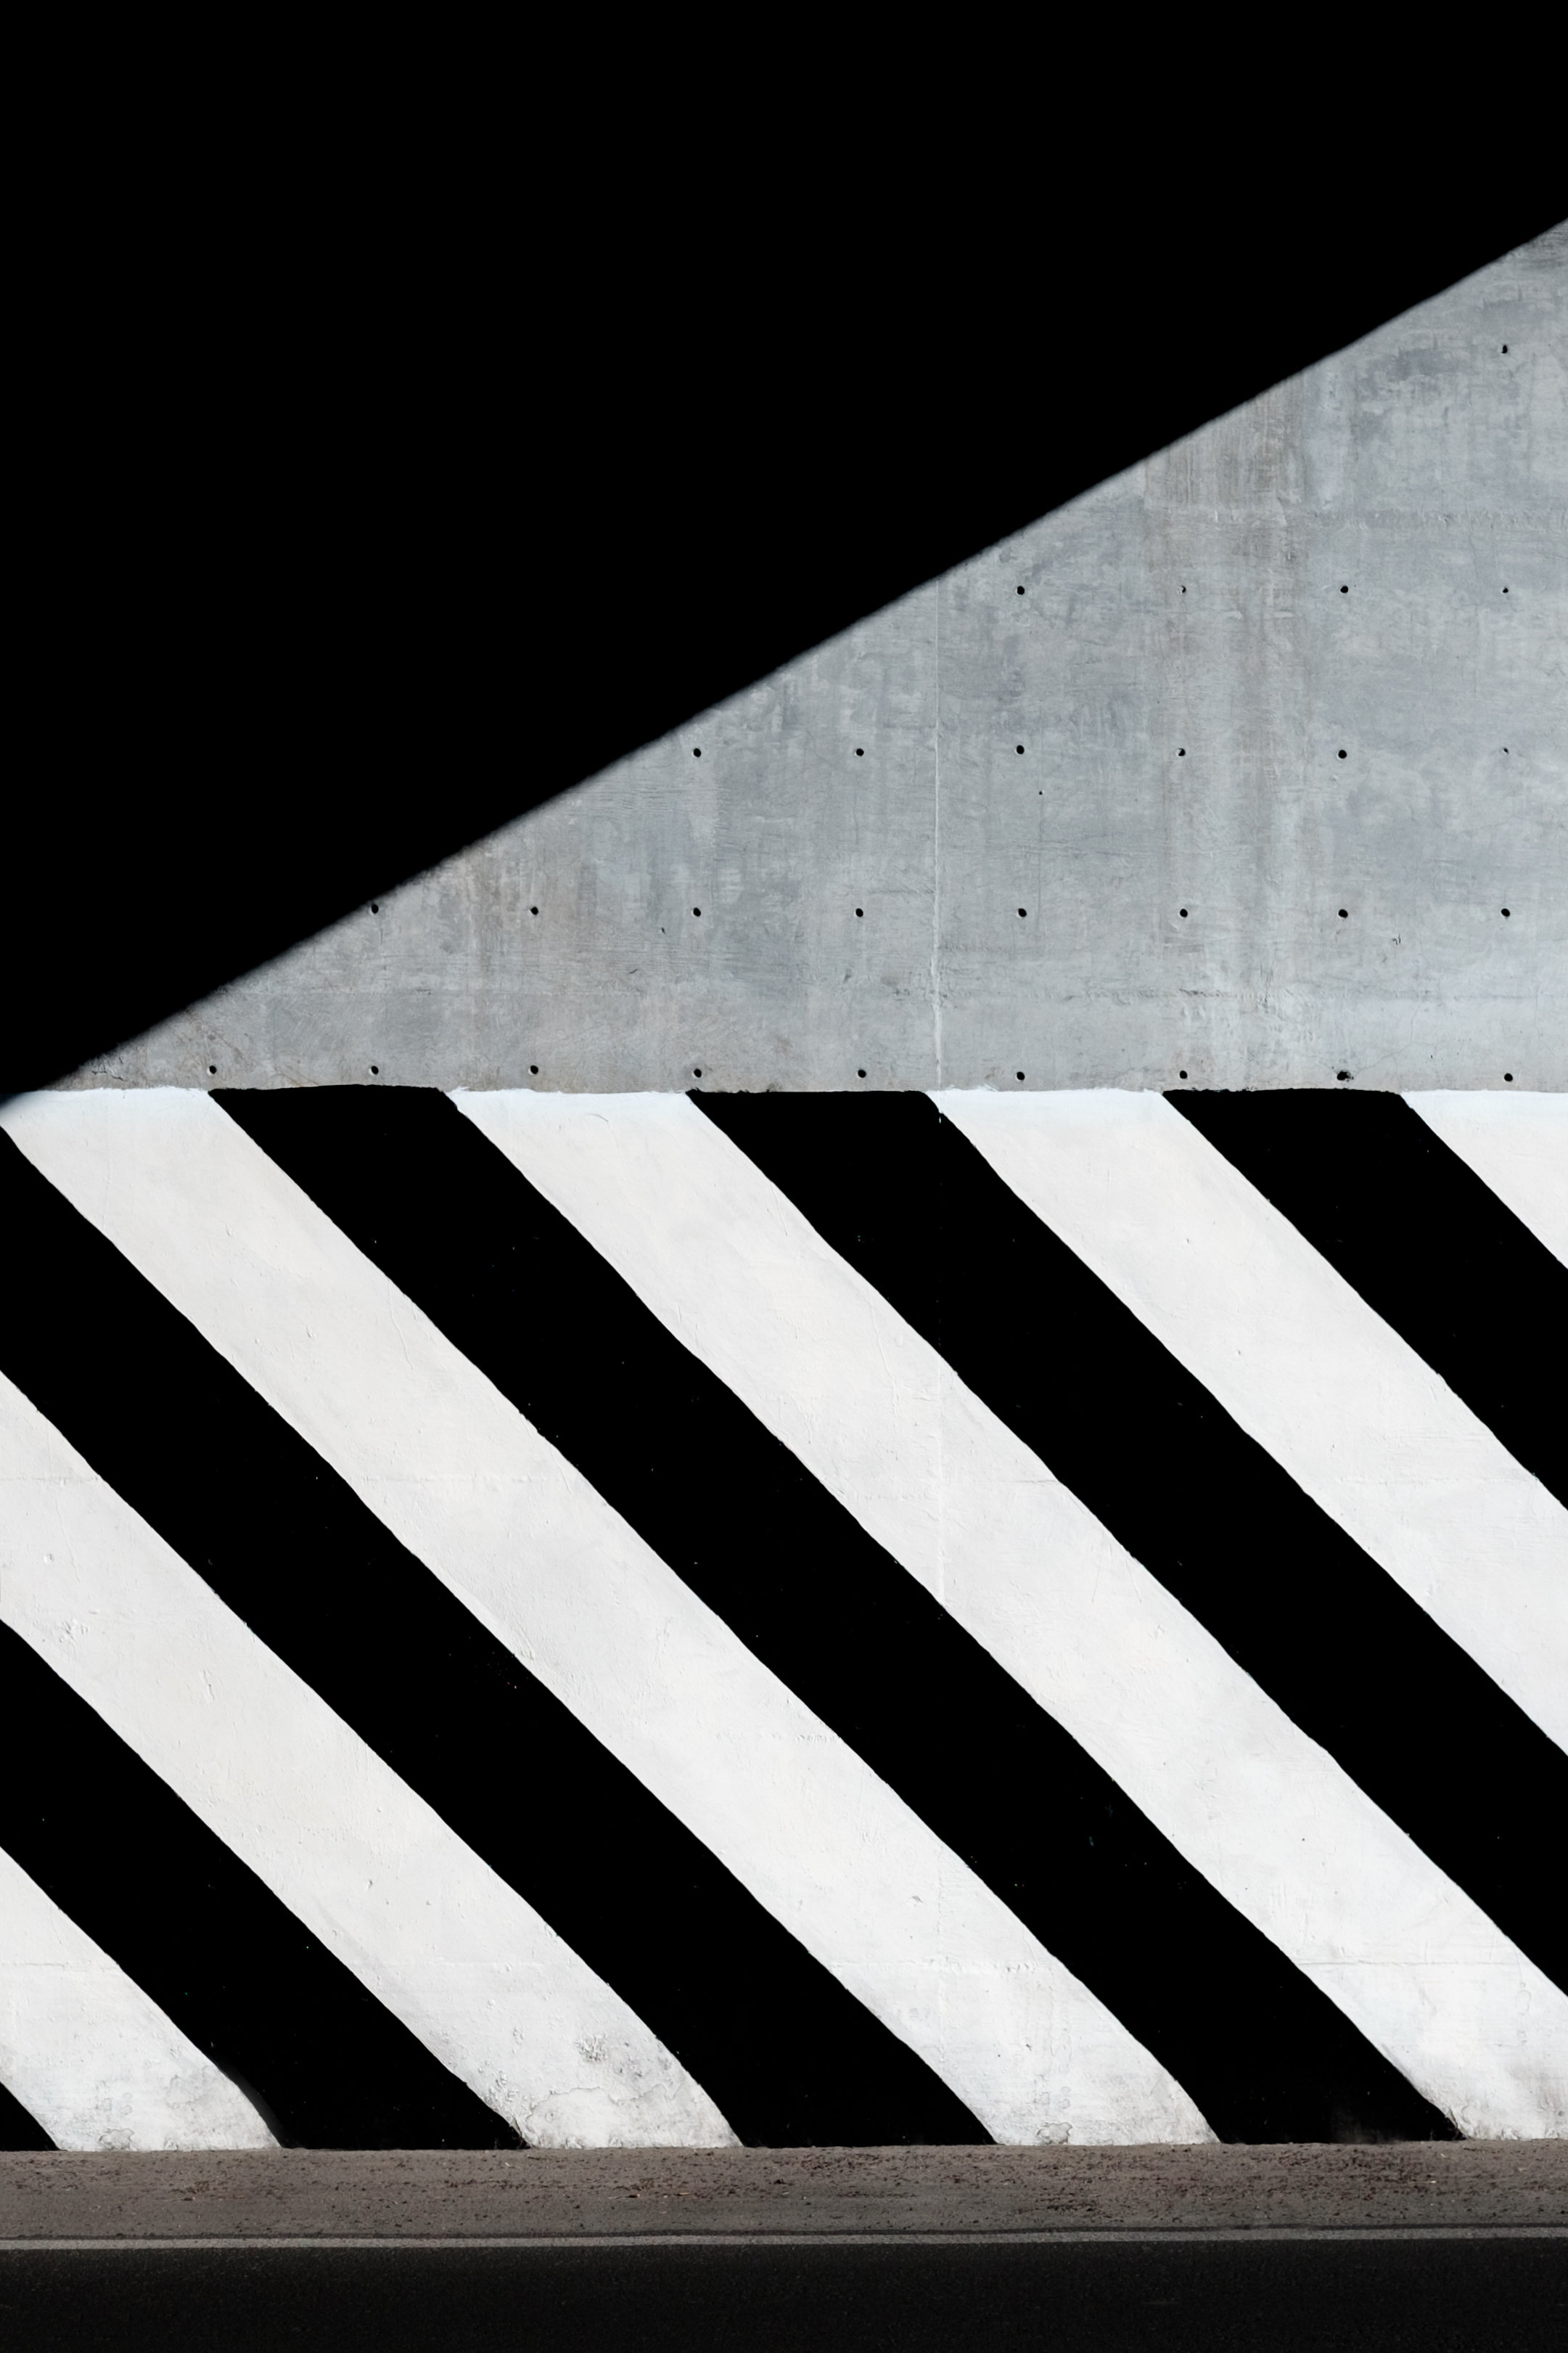 - Black, white and greyscale. Graphic element